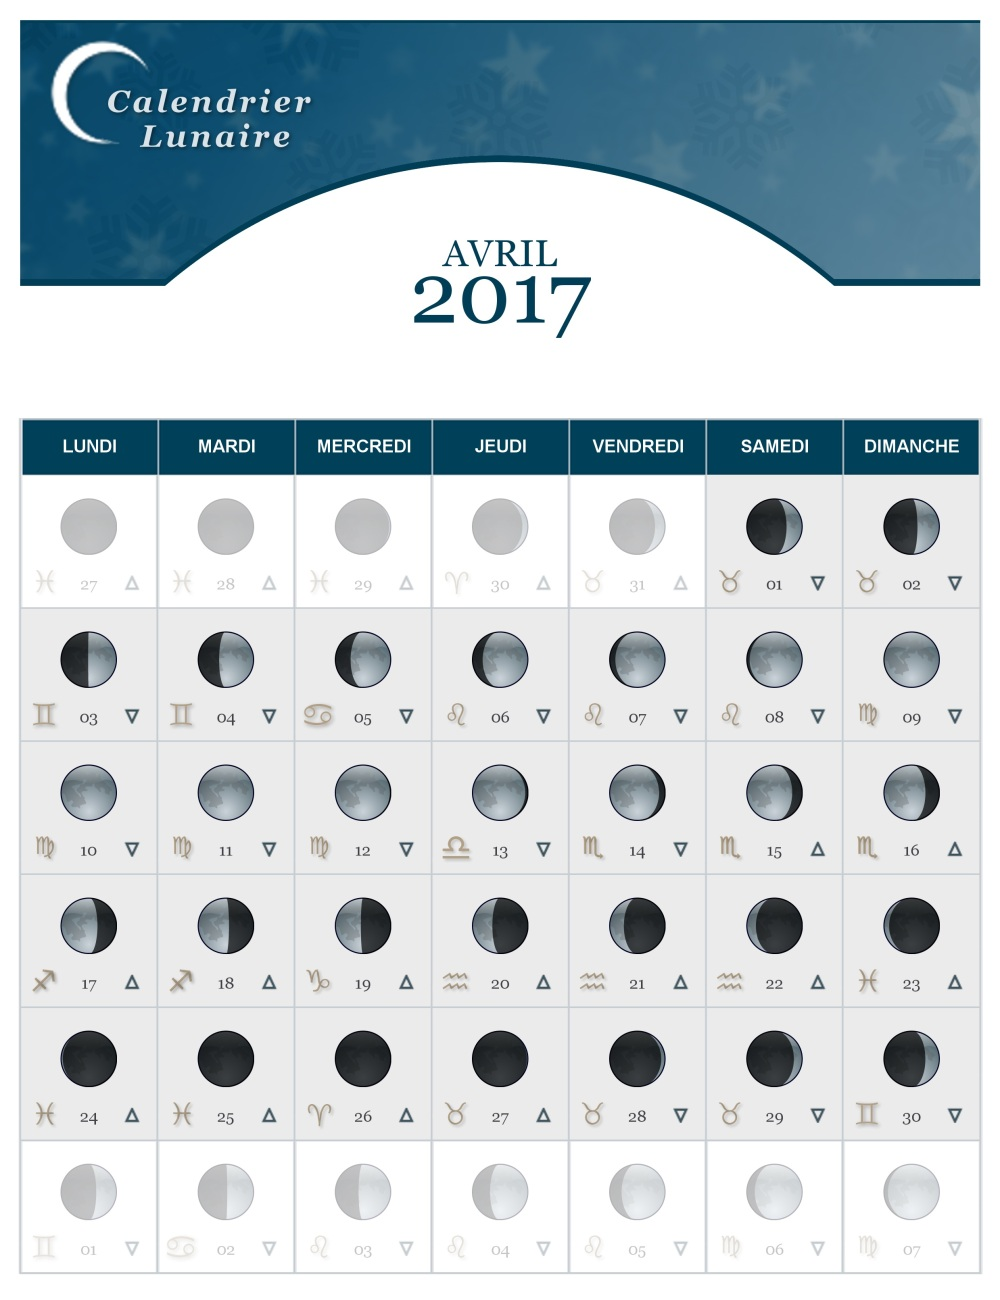 calendrier lunaire du mois d avril 2017 the lucky cath concept. Black Bedroom Furniture Sets. Home Design Ideas